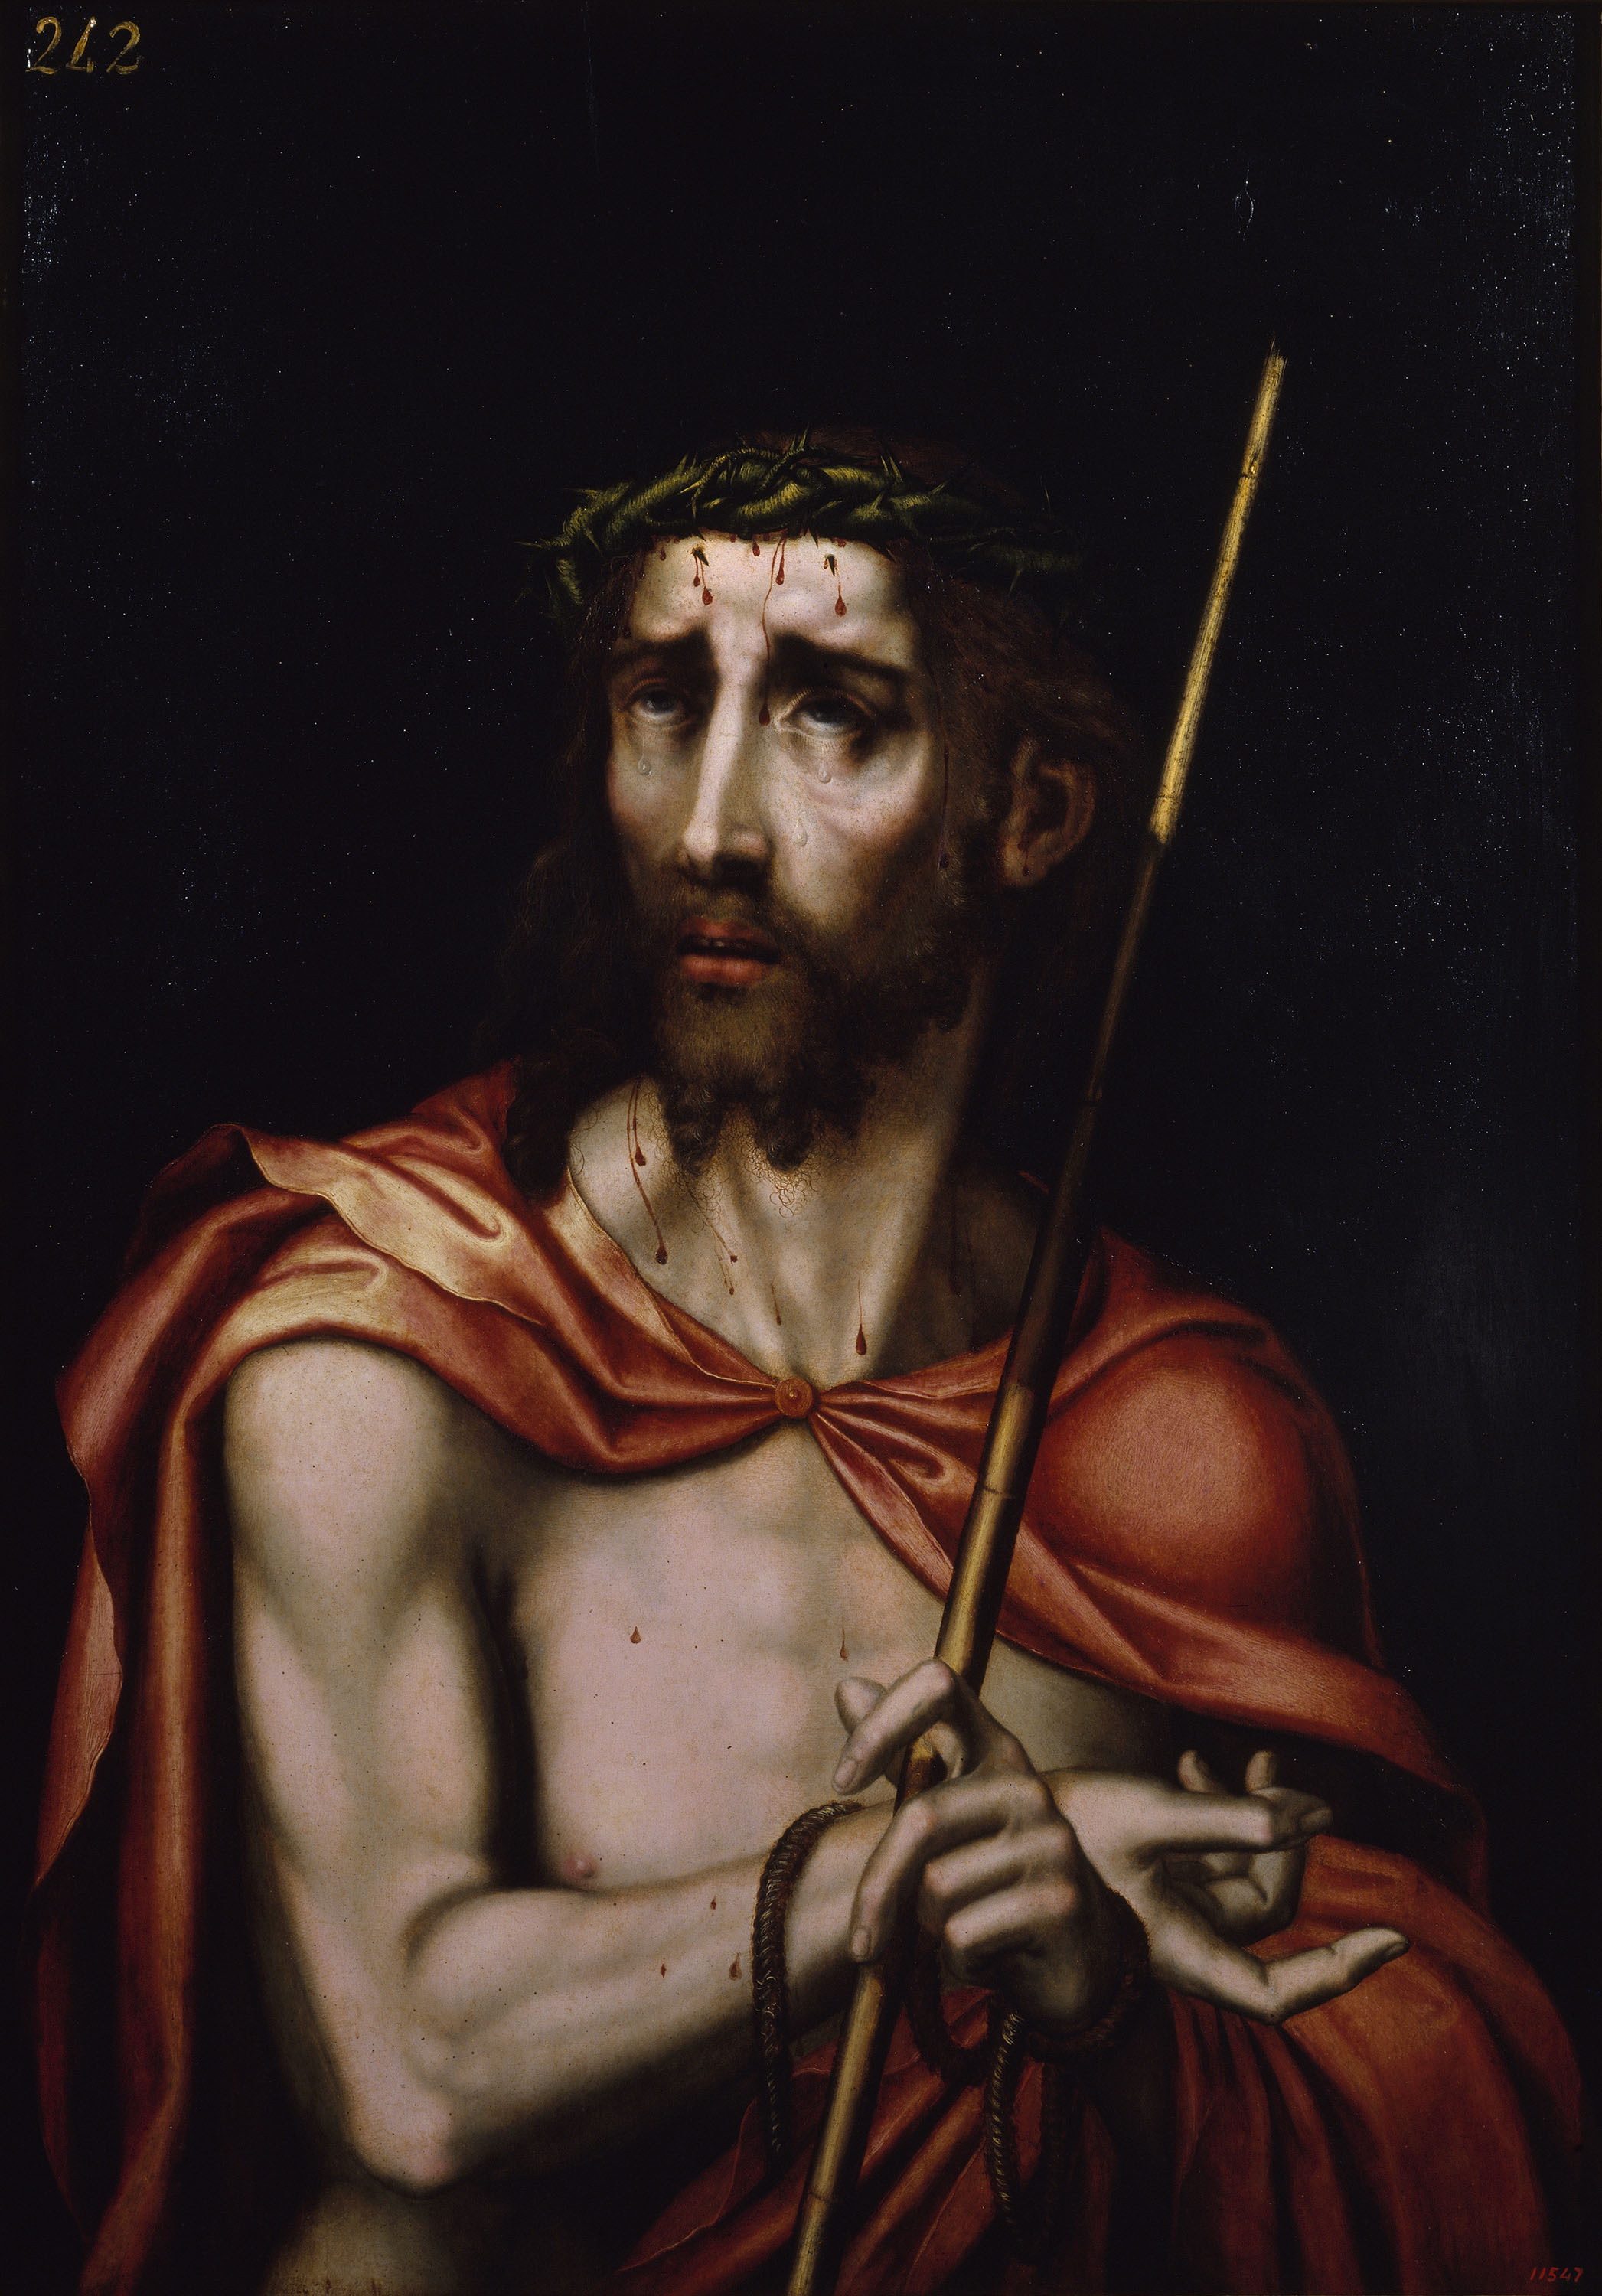 Workshop of Luis de Morales. Ecce Homo, between 1570-1580